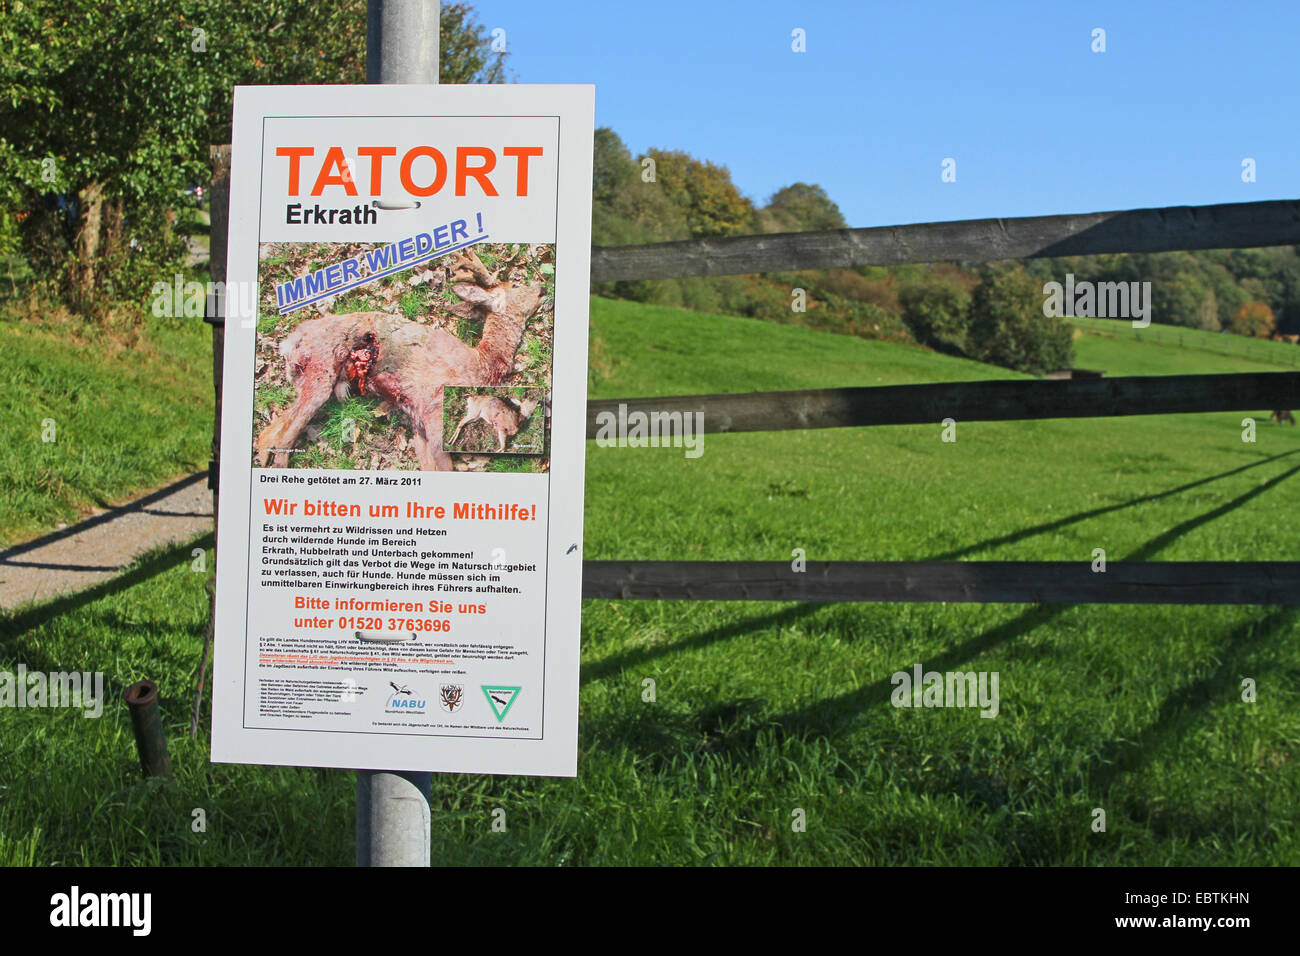 sign informing about disturbance and of killing of wild by dogs, Germany, North Rhine-Westphalia, Erkrath - Stock Image